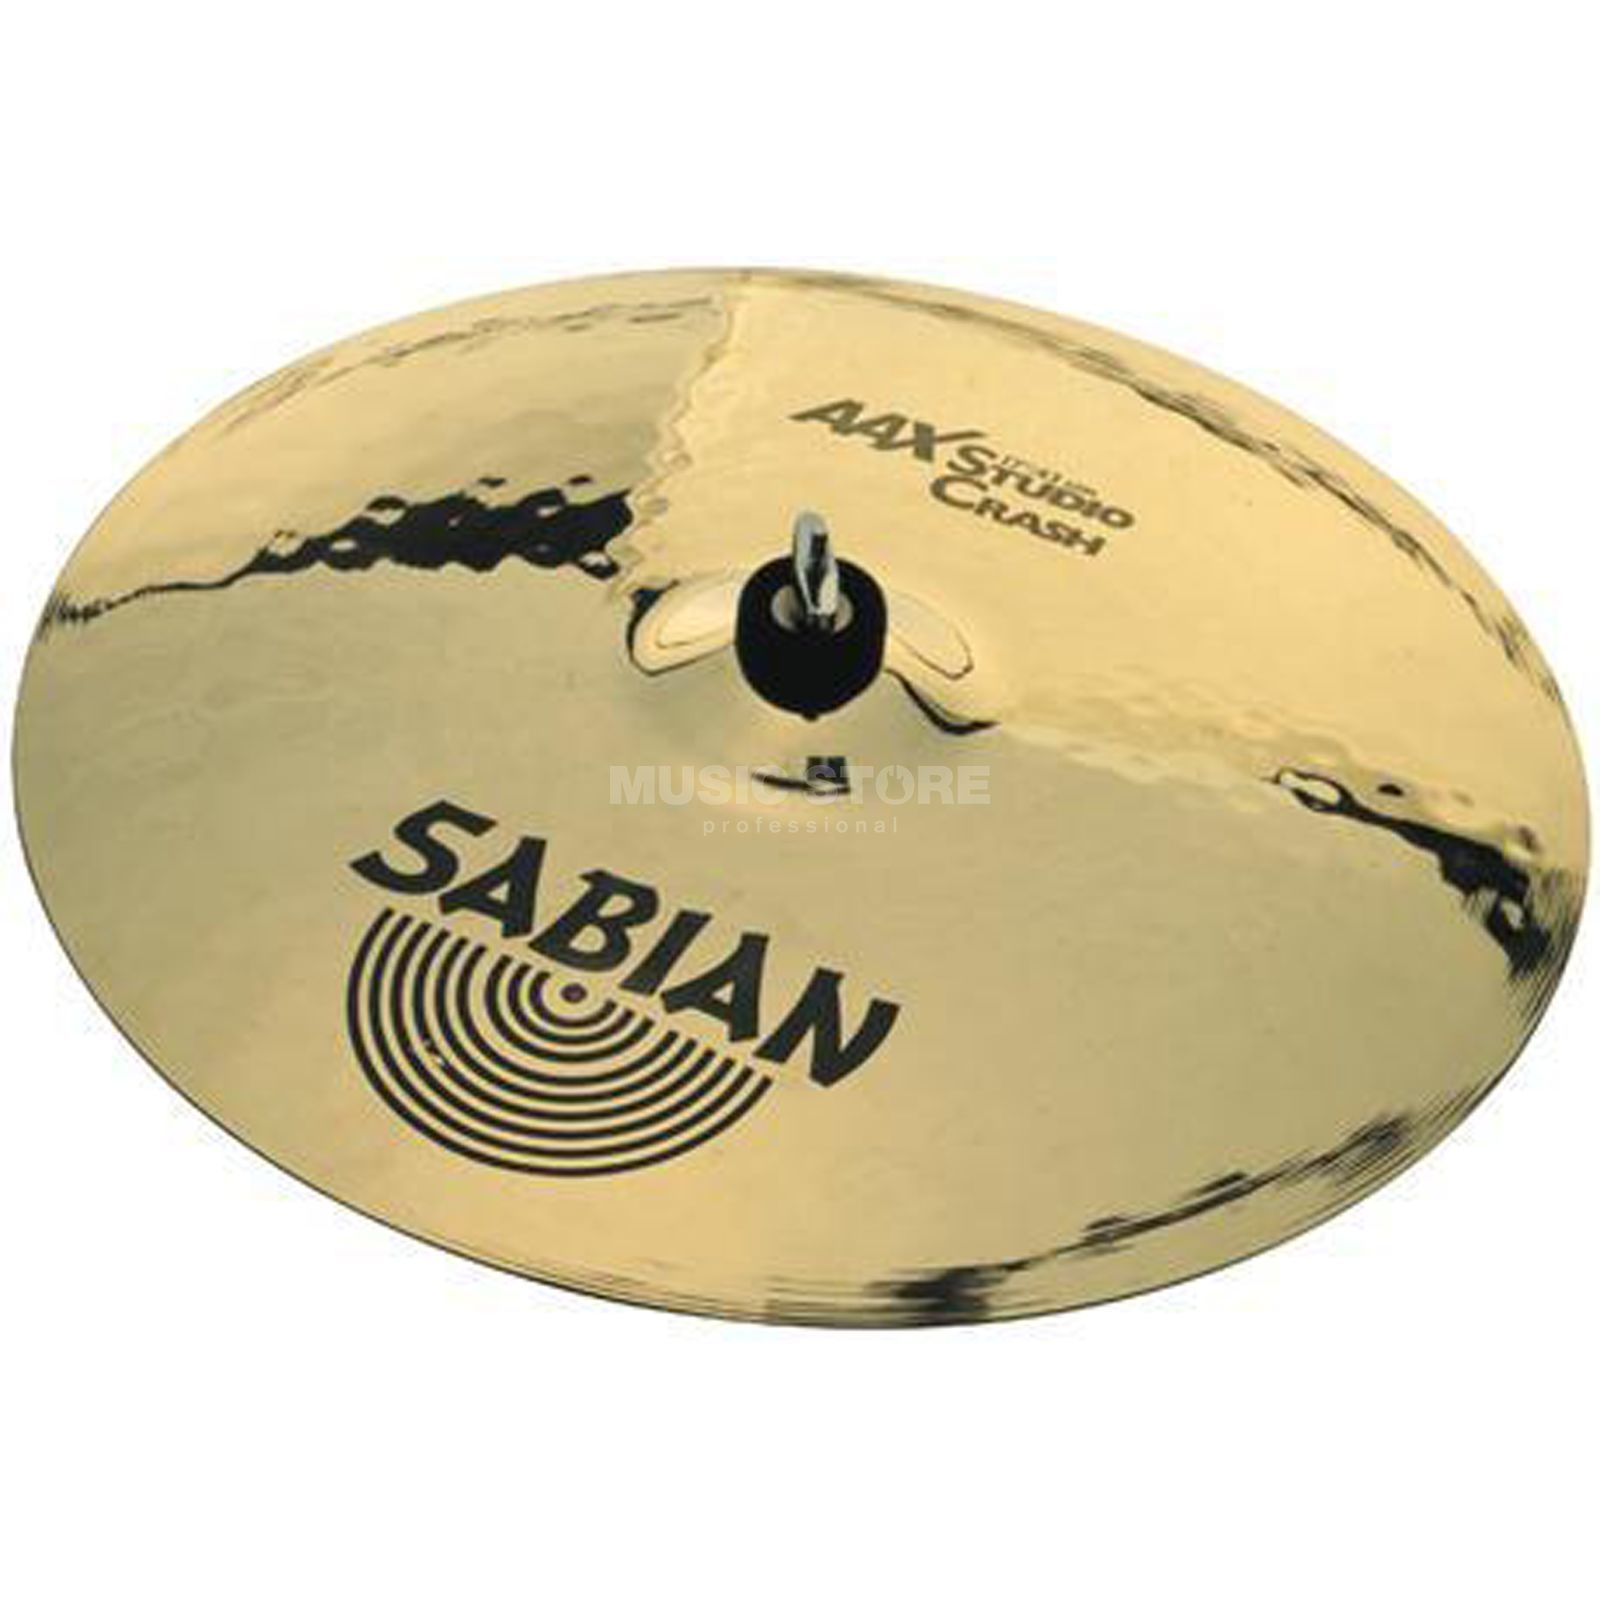 "Sabian AAX Studio Crash 16"" Brilliant Finish Изображение товара"